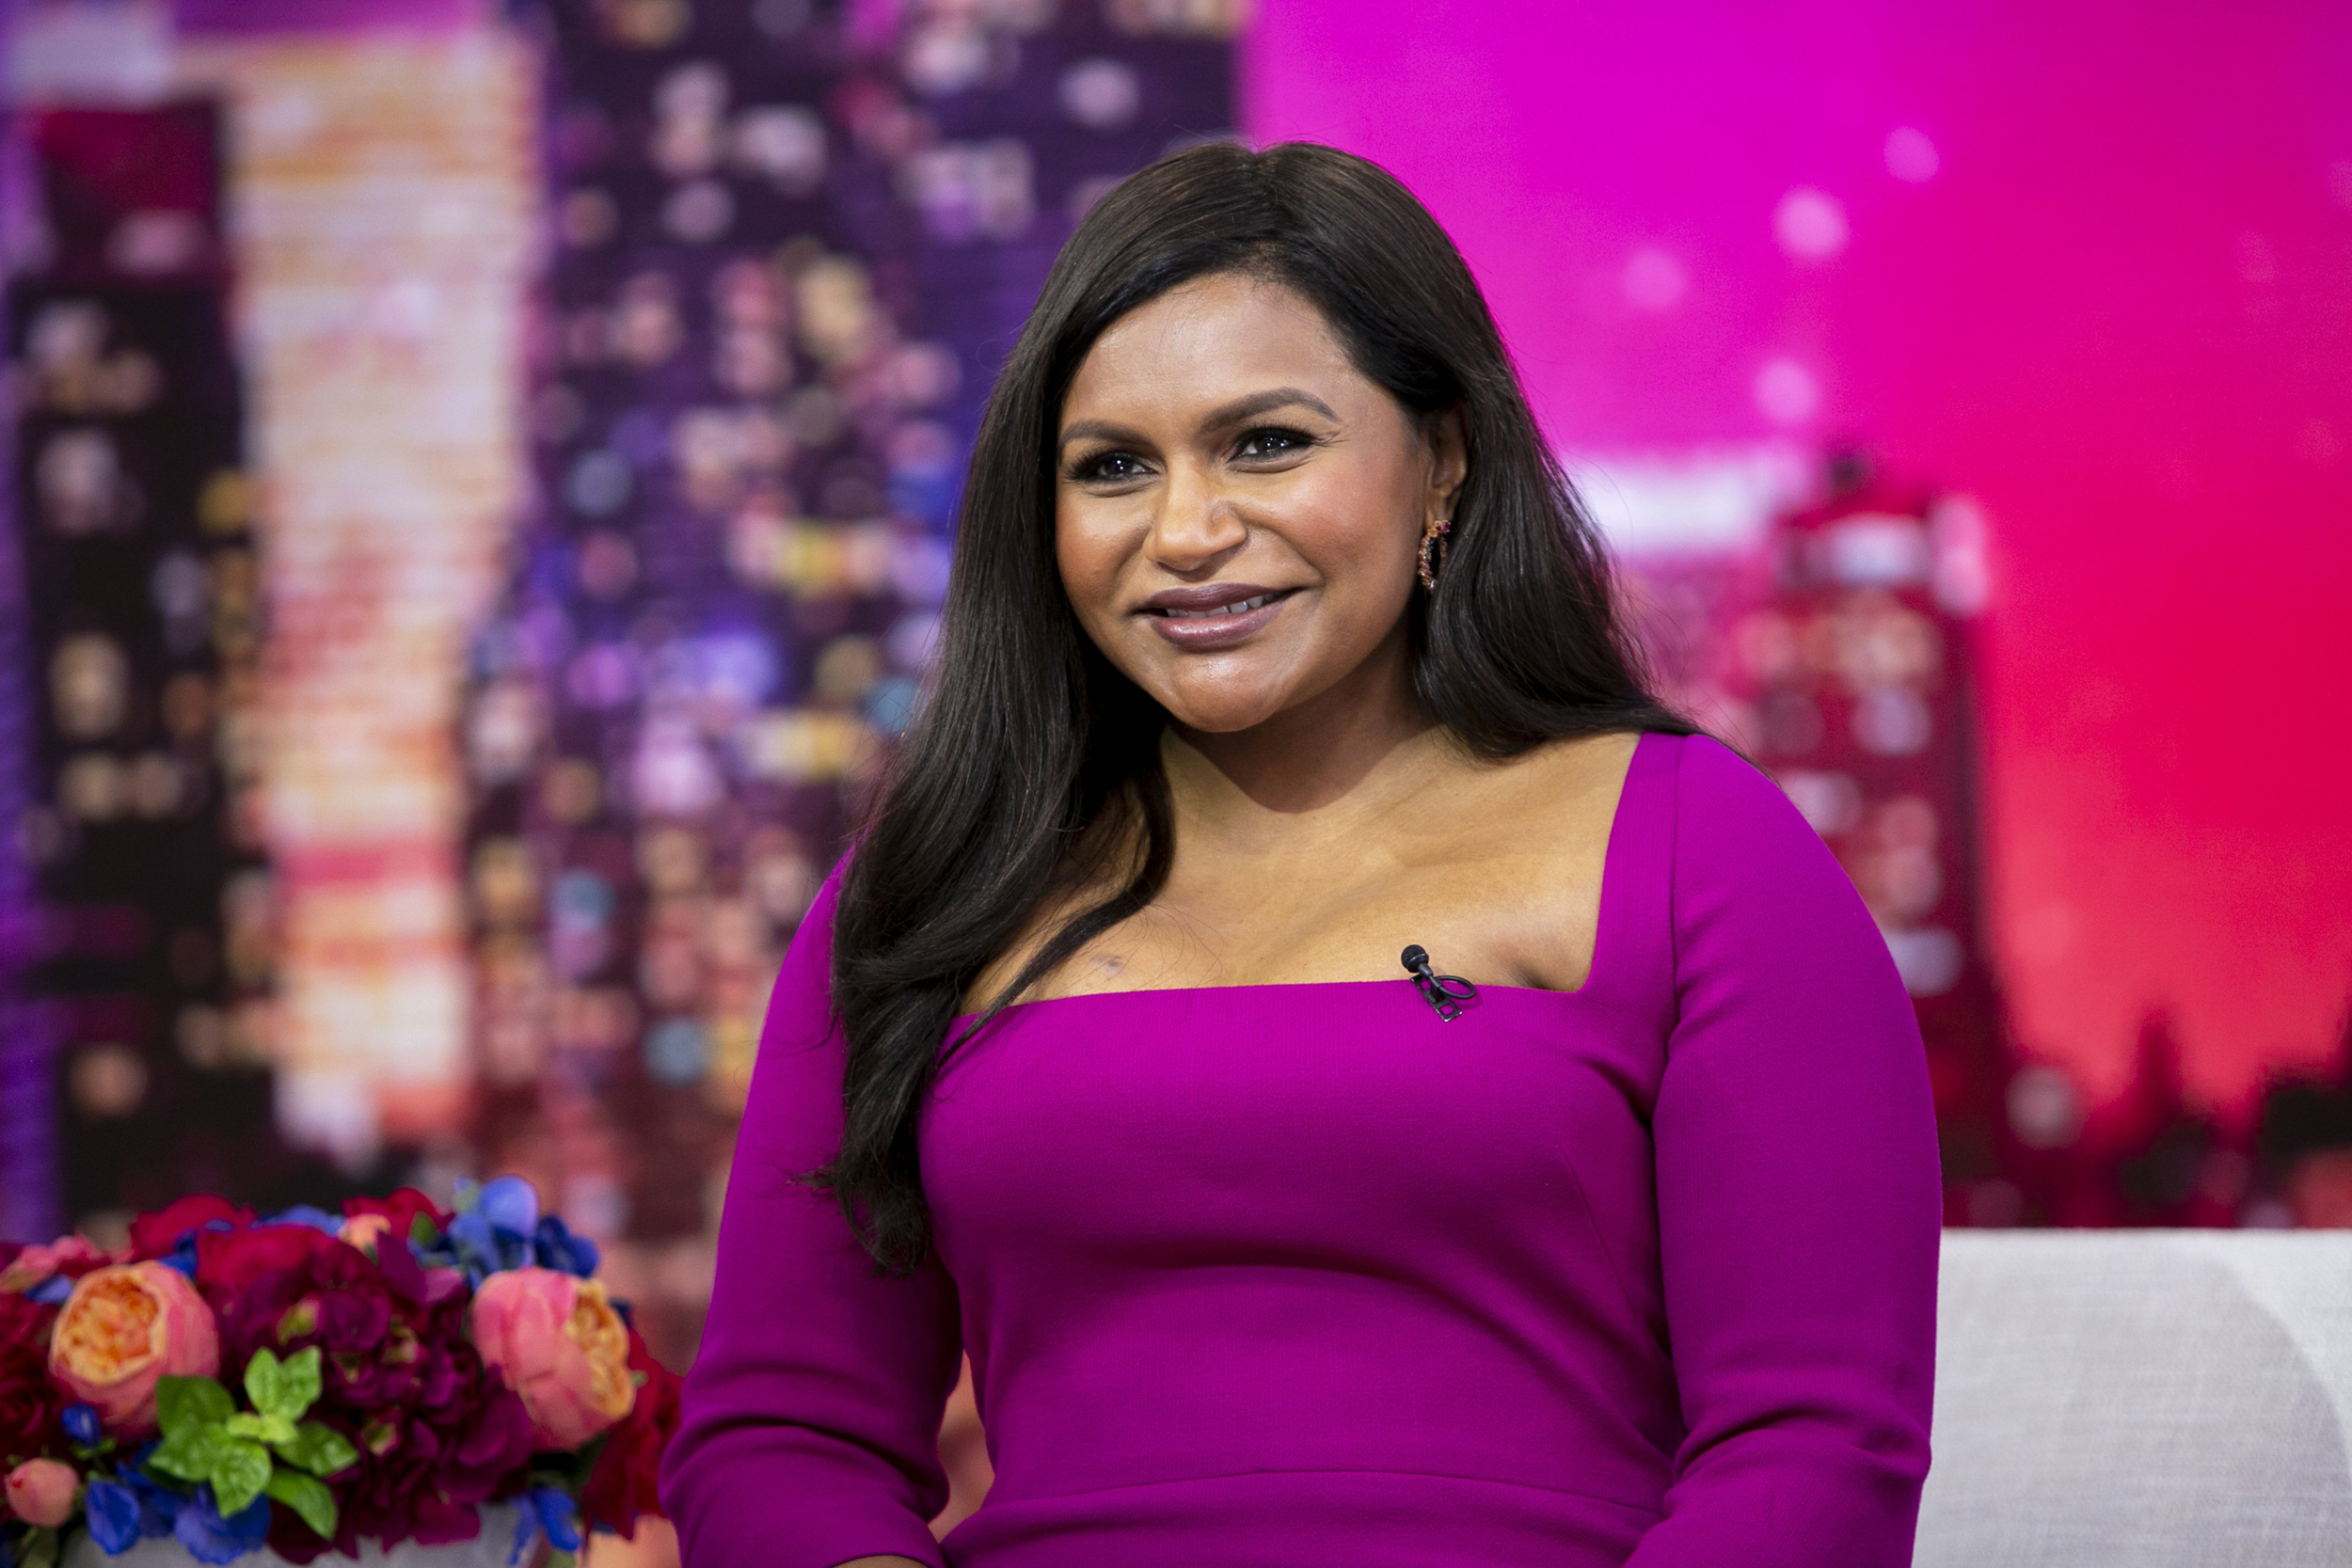 Academy Responds To Mindy Kaling S Claim She Was Singled Out To Defend Producer Credit